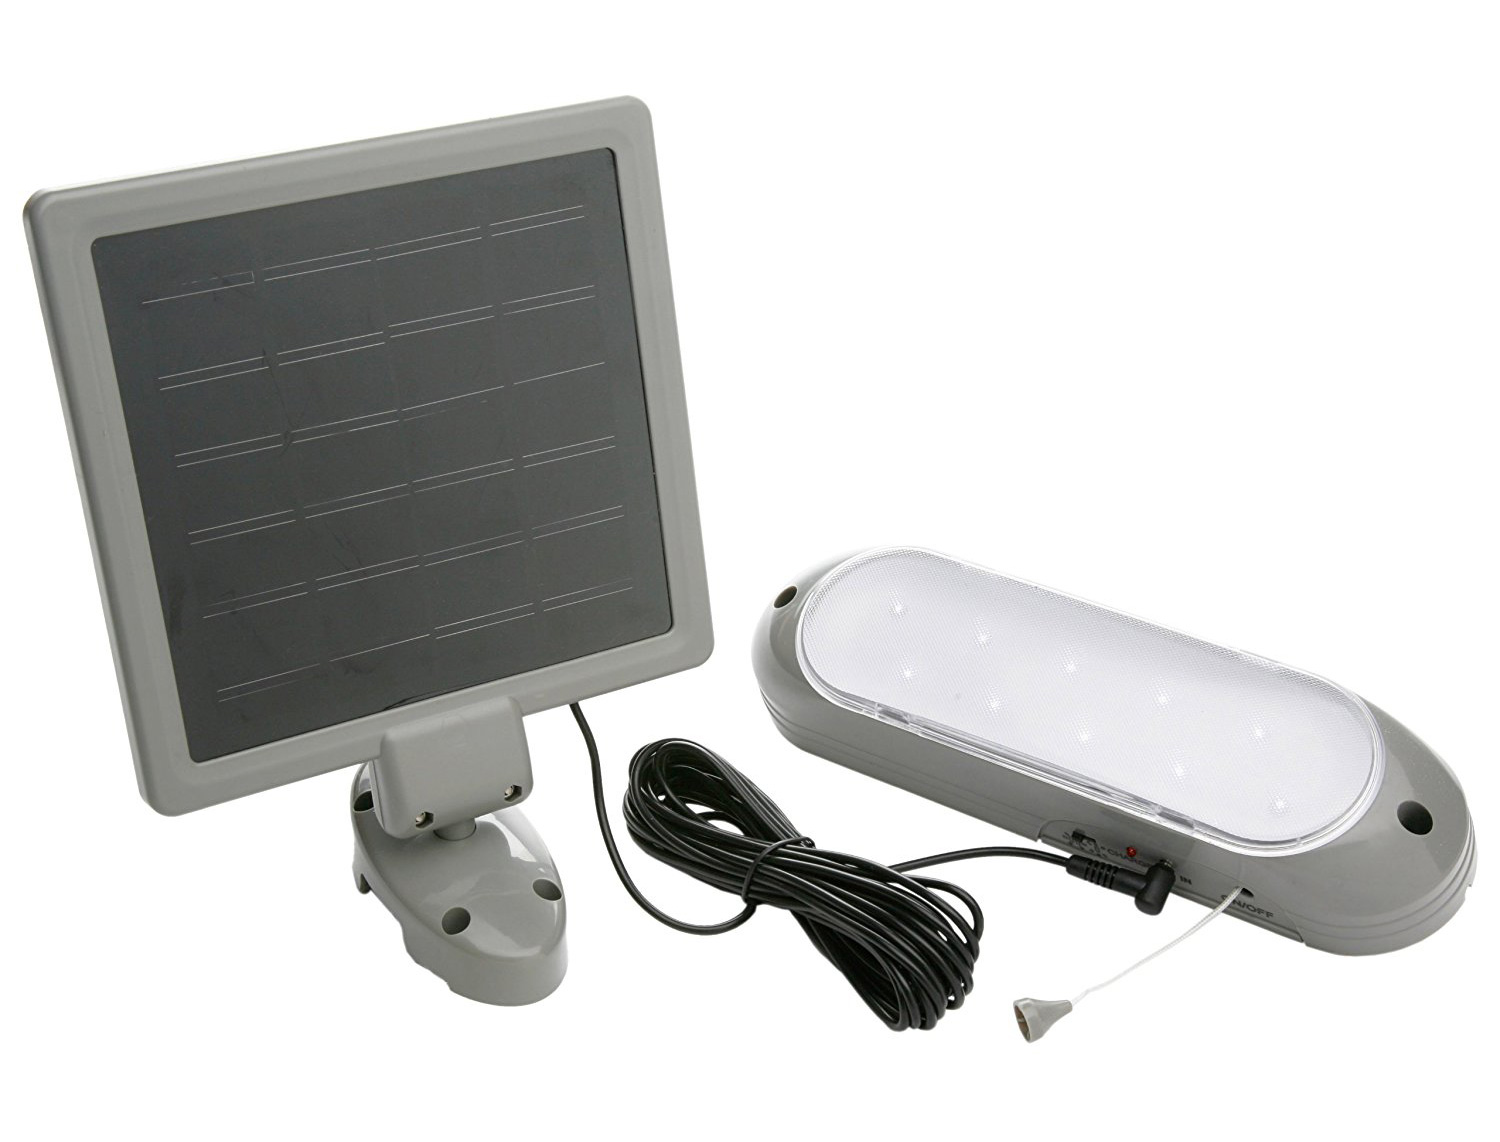 Best Solar Shed Lights Ledwatcher Wiring Up Consumer Unit Designers Edge L 949 Outdoor Light